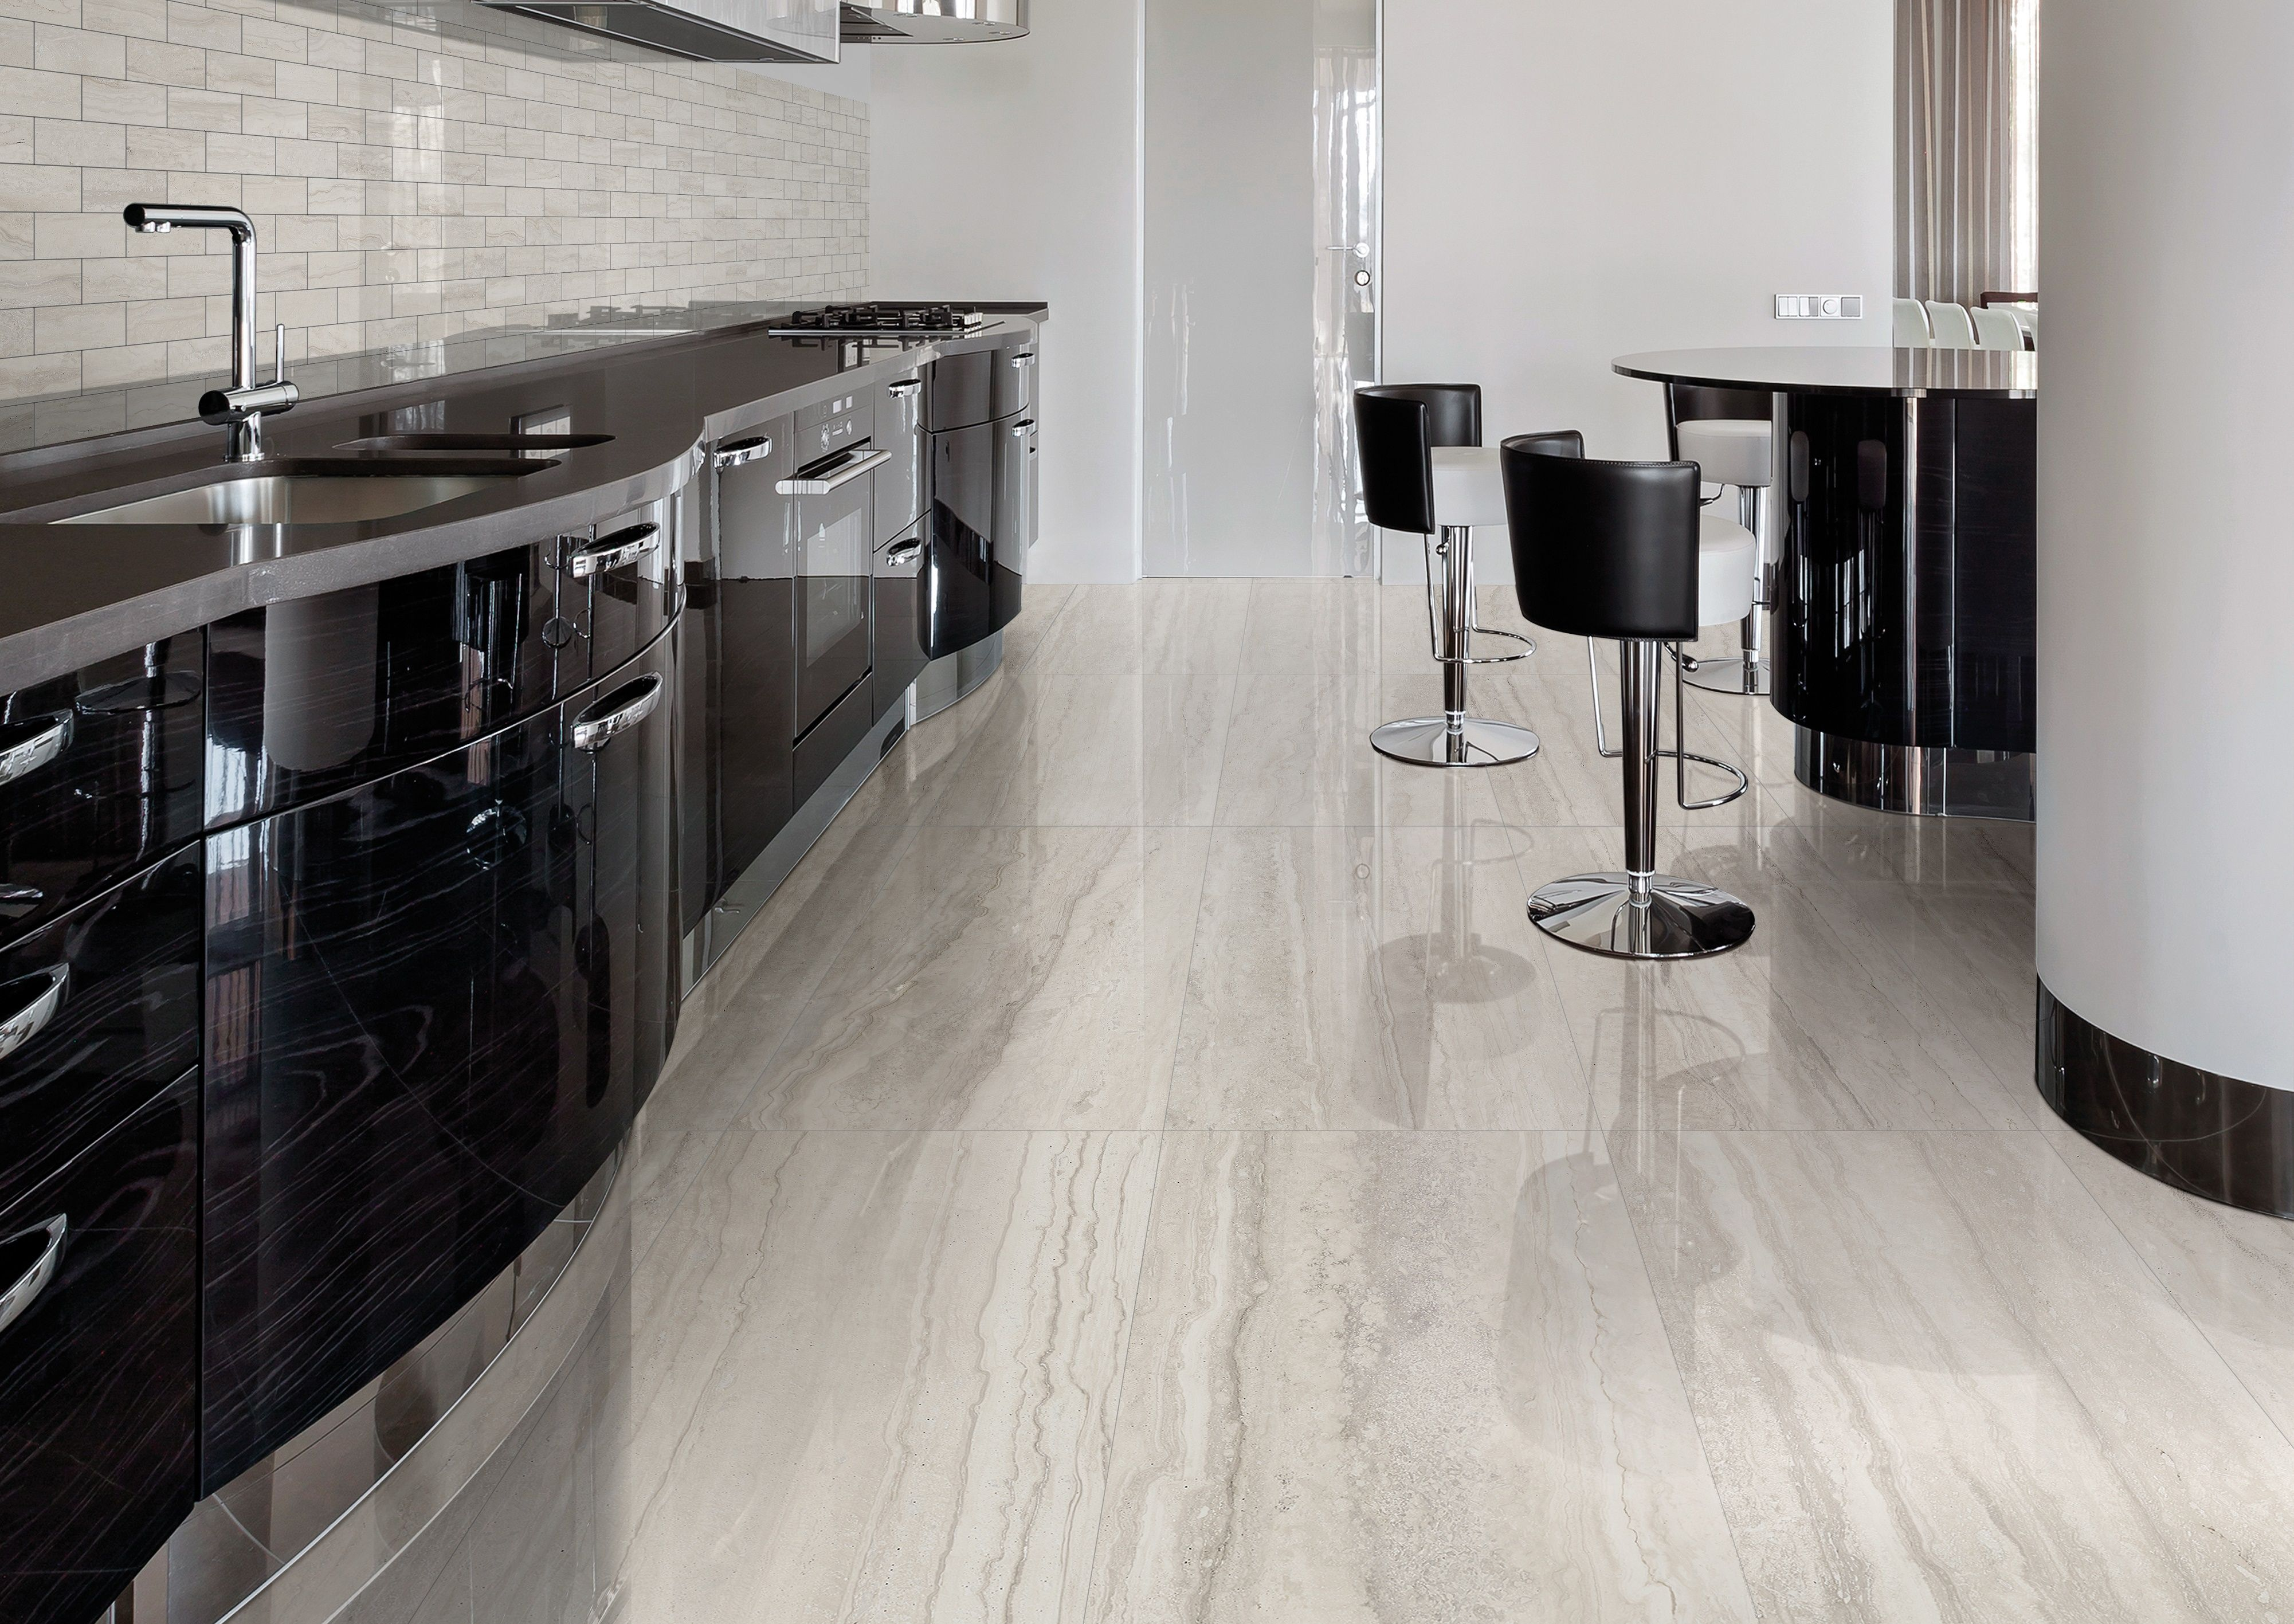 Pin By Tile Warehouse On 1200x600mm Large Format Tiles 2018 Large Format Tile Tile Suppliers Tile Warehouse